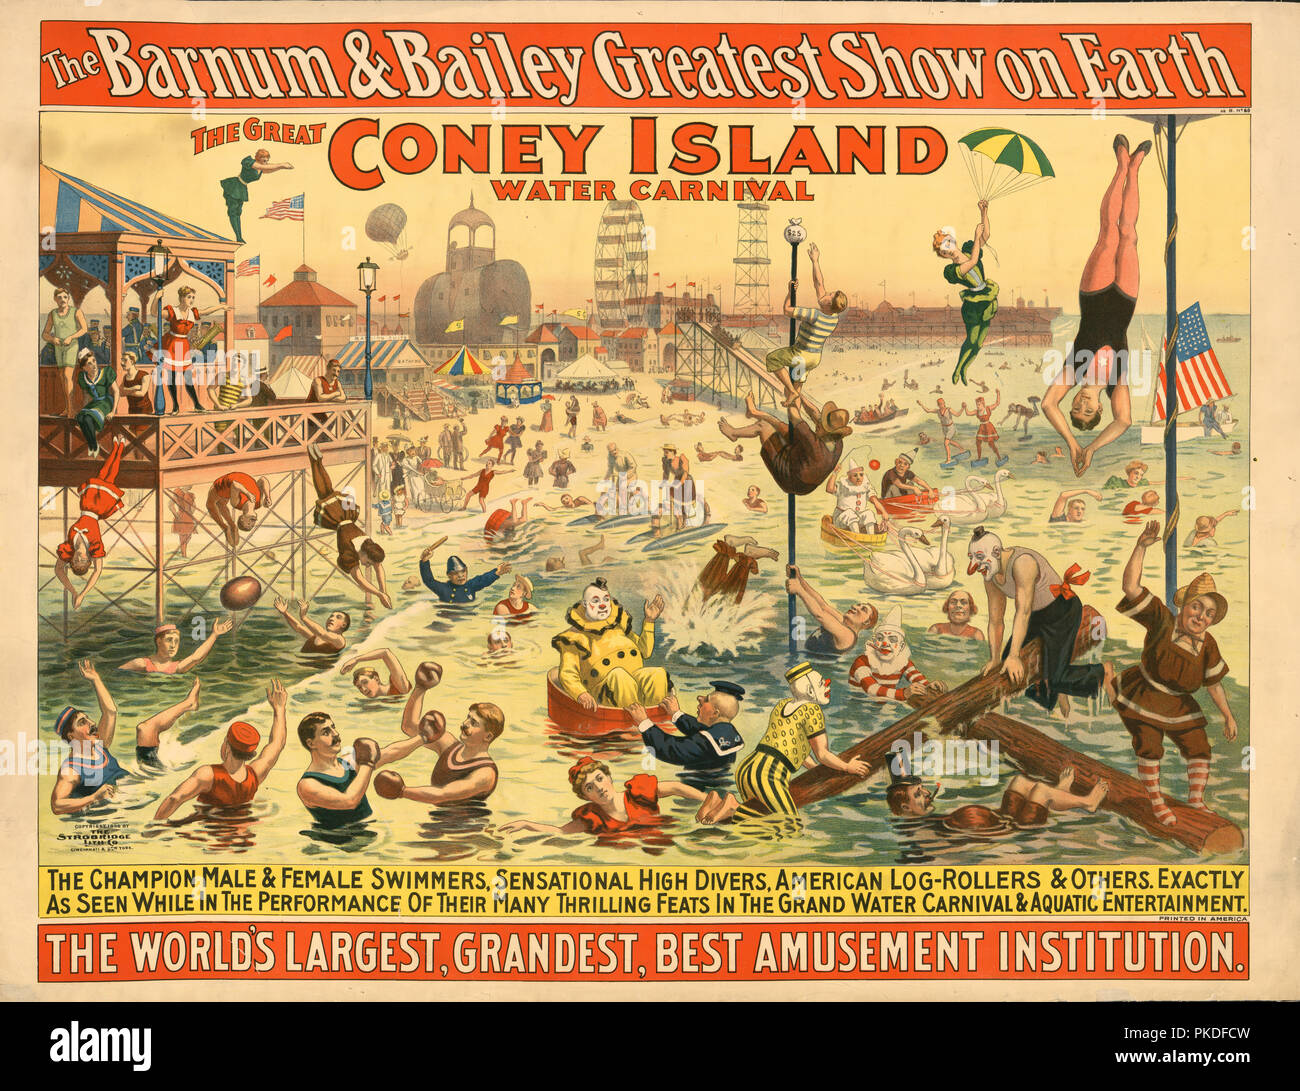 The Barnum & Bailey Greatest Show on Earth The Great Coney Island Water Carnival. Poster shows people in costumes, including clowns, performing at the beach. Stock Photo